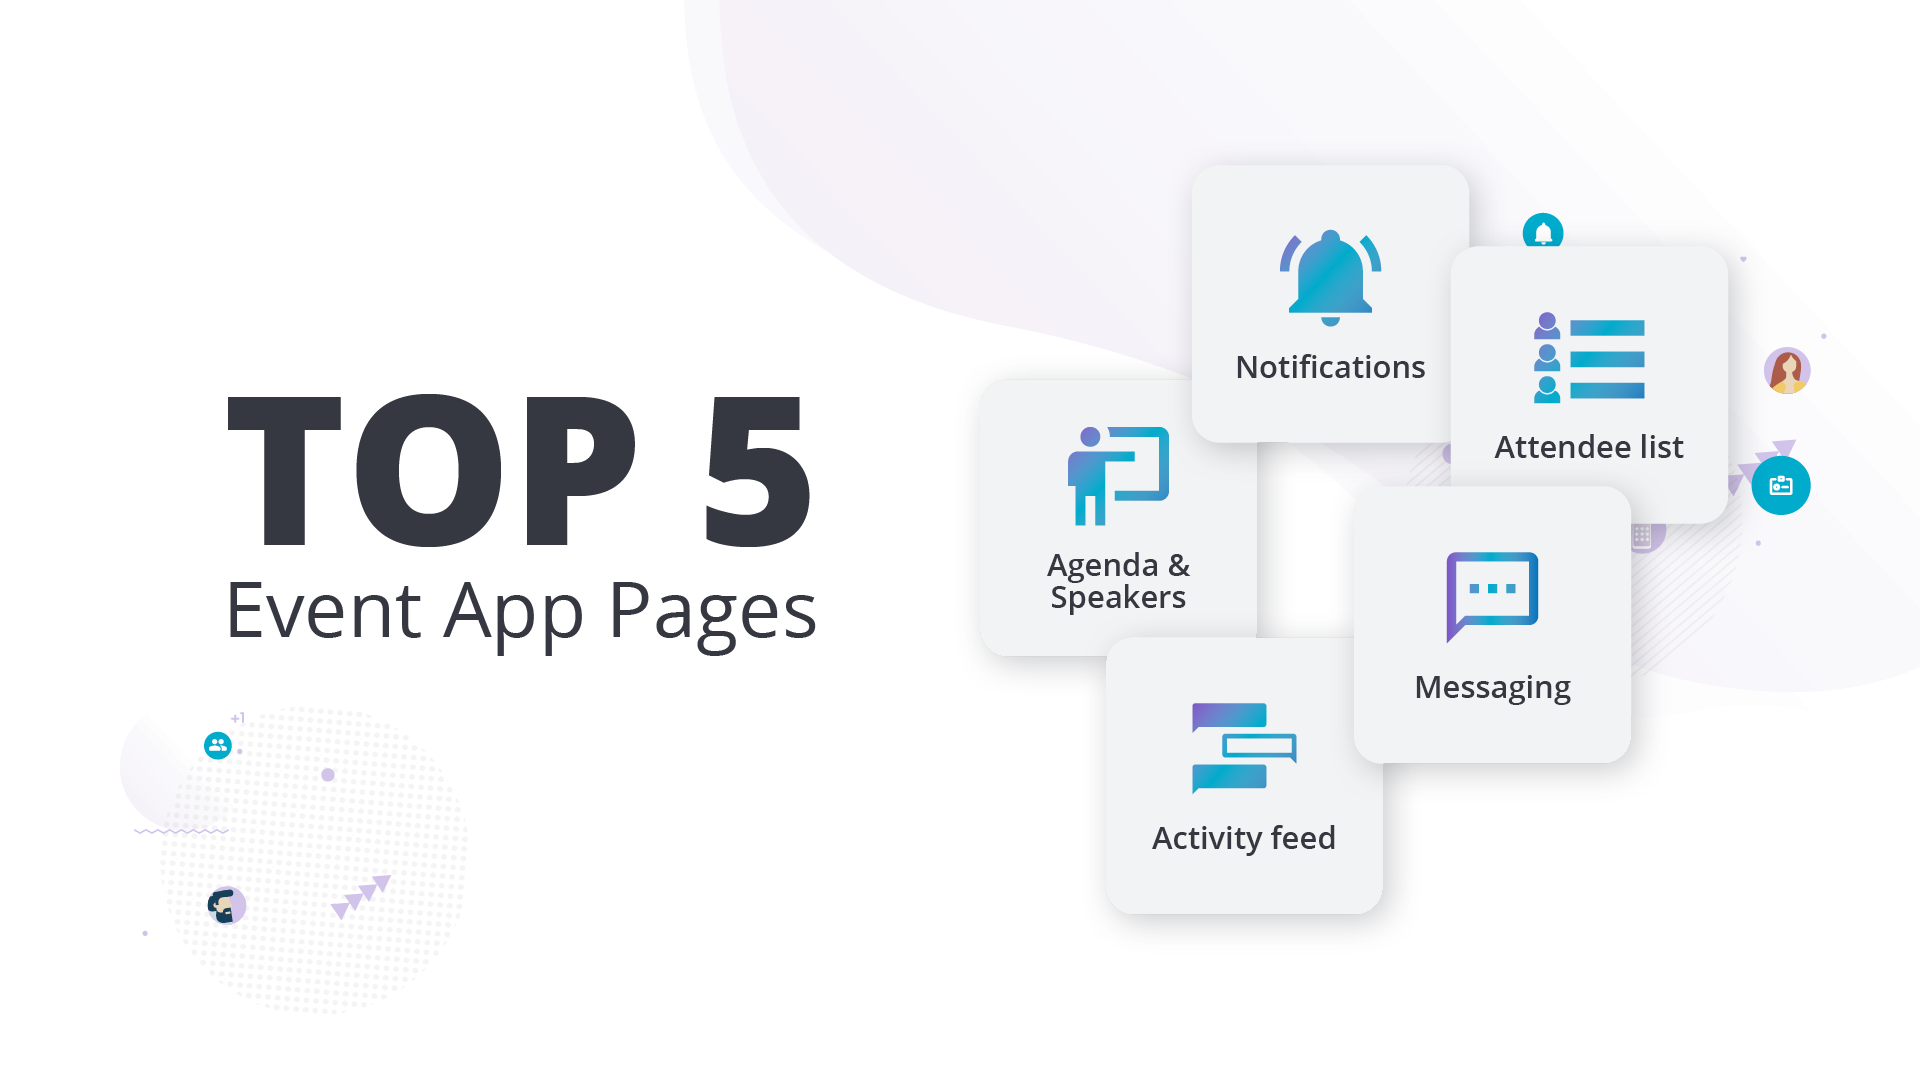 Top 5 event app pages